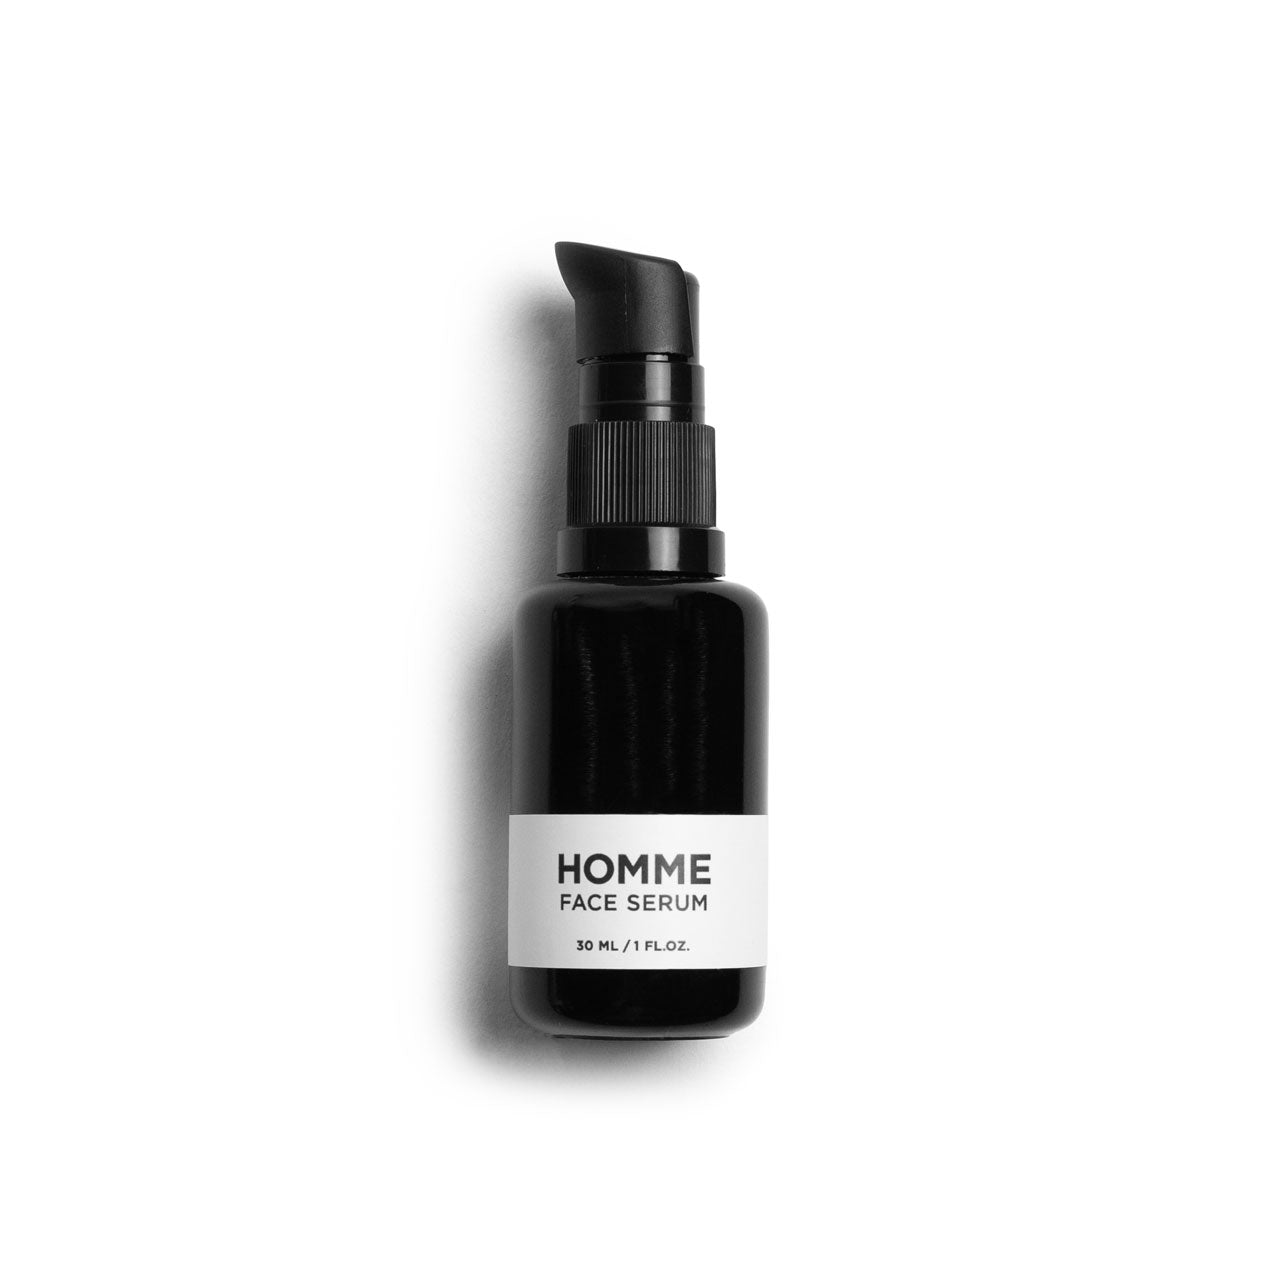 Homme Face Serum